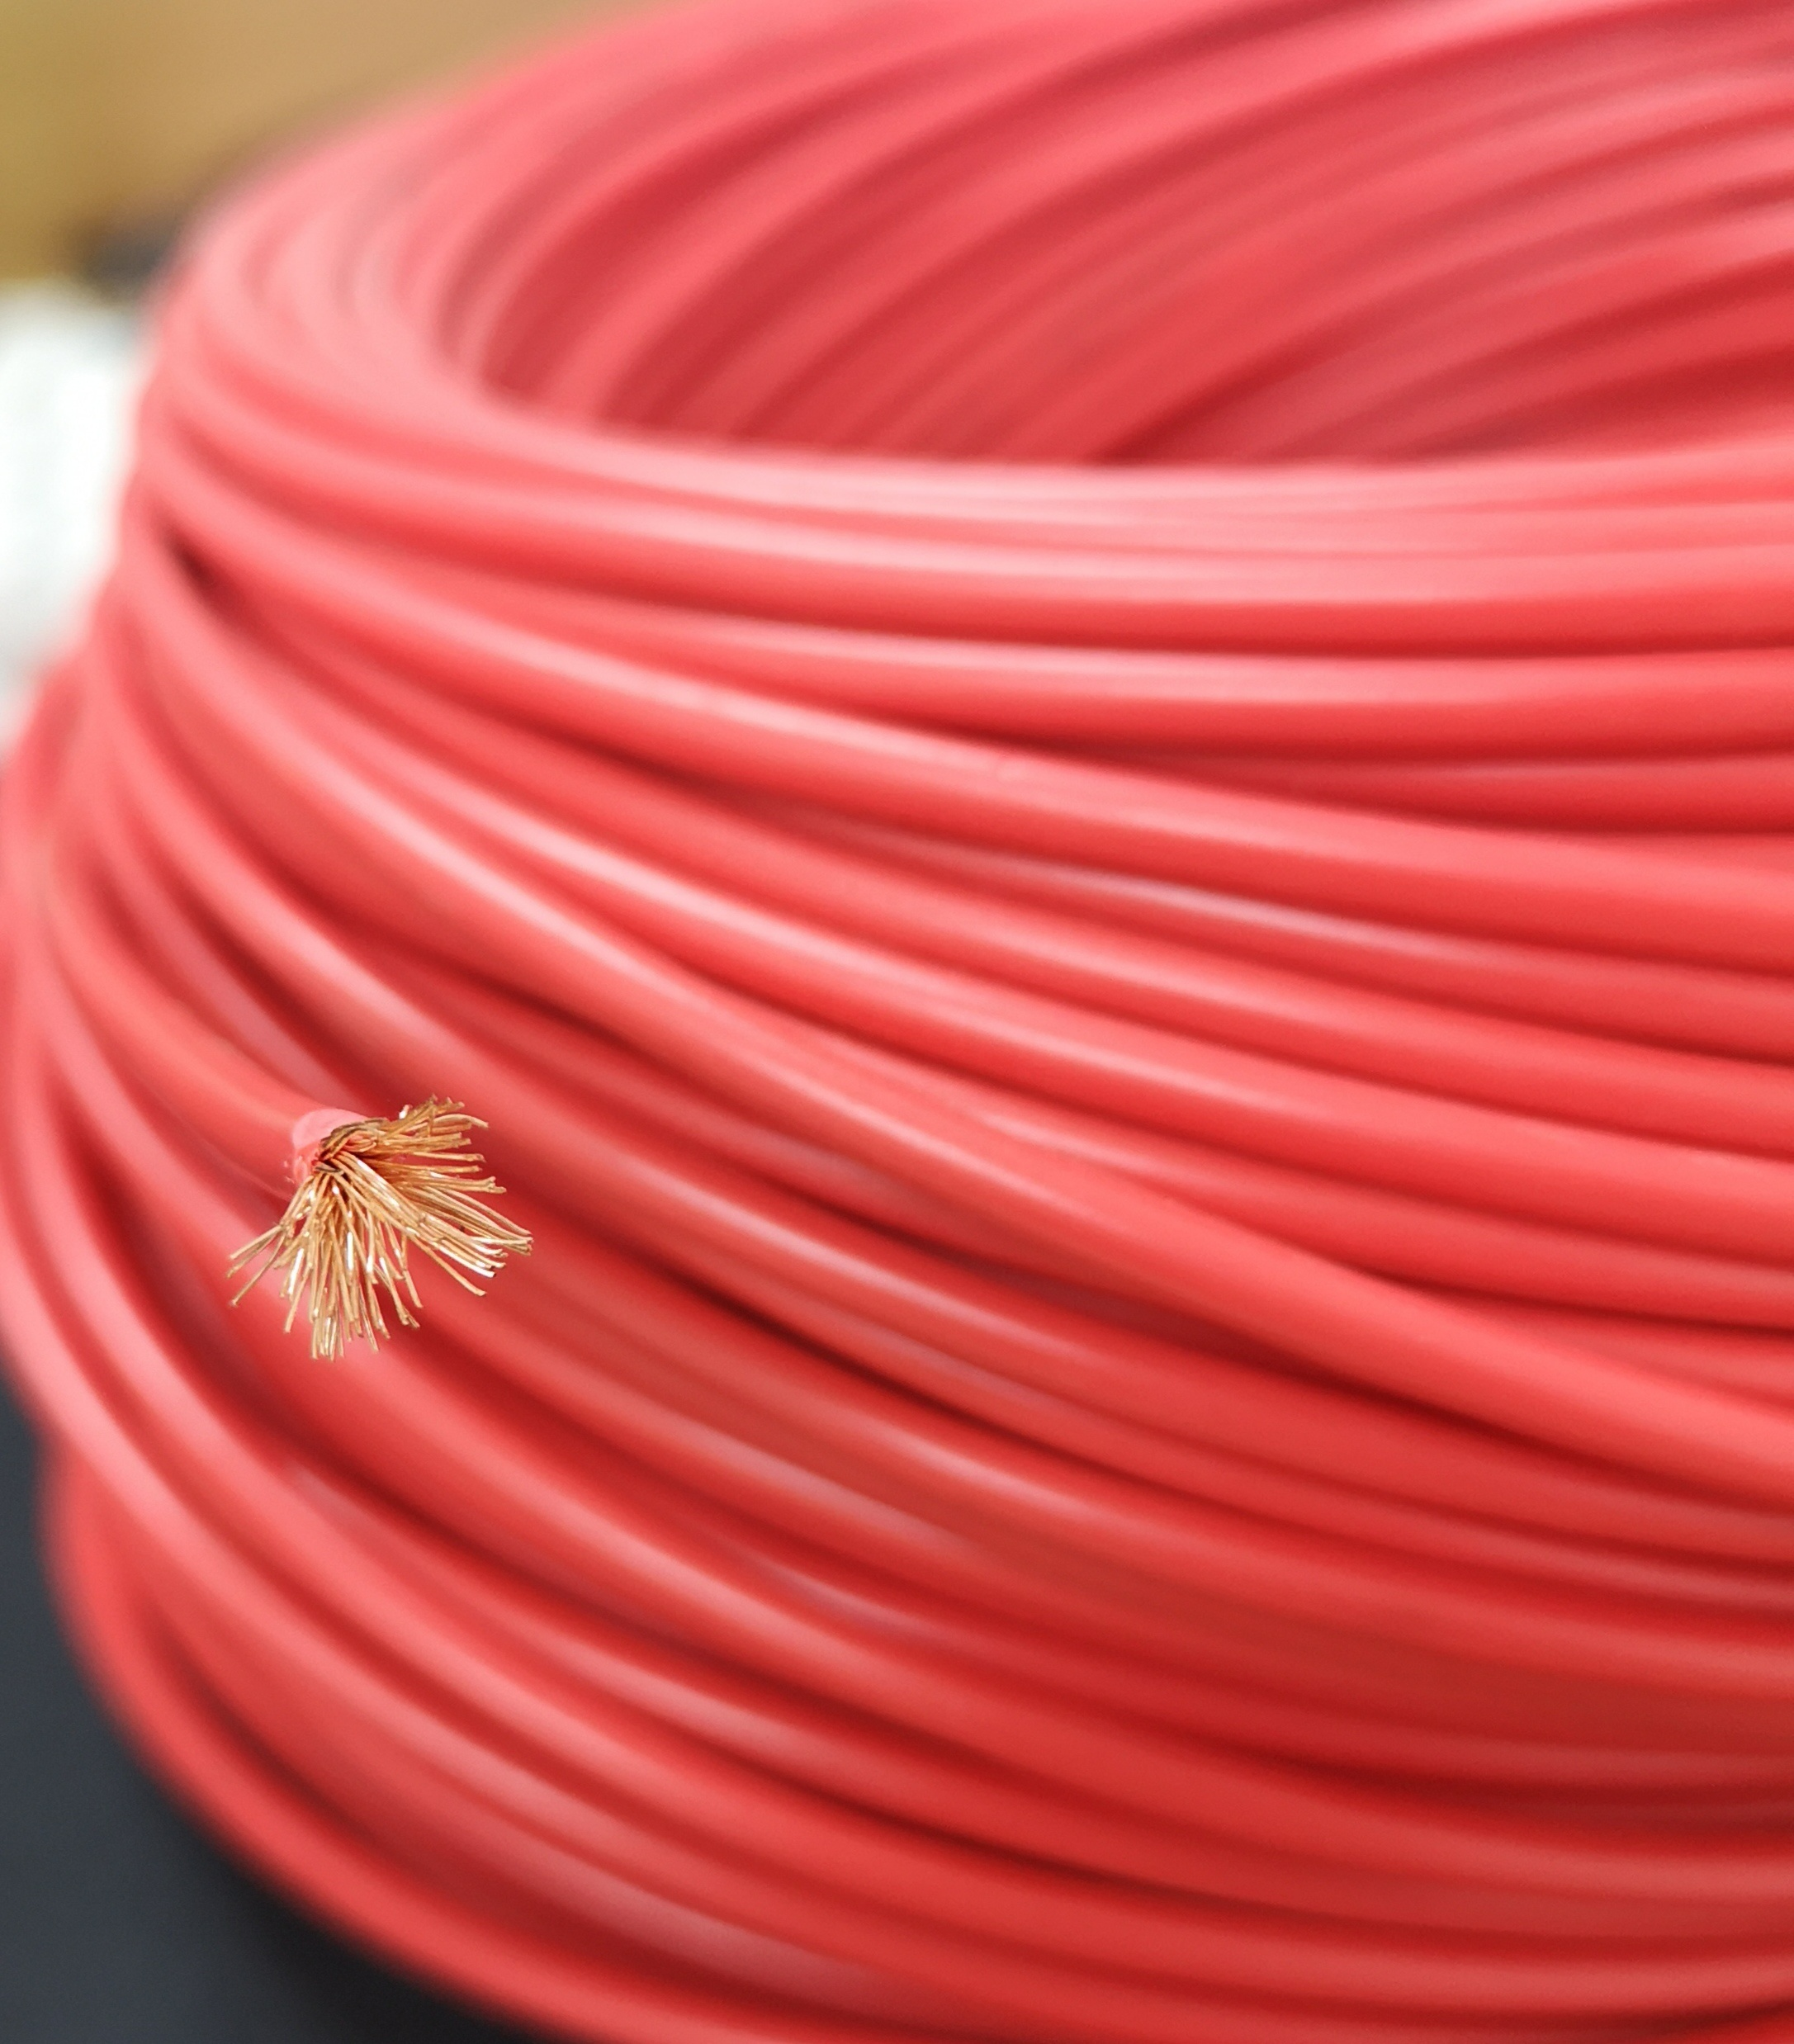 <strong>H07V</strong>-<strong>K</strong> 2.5mm2 factory direct selling <strong>PVC</strong> insulated flexible <strong>cable</strong>